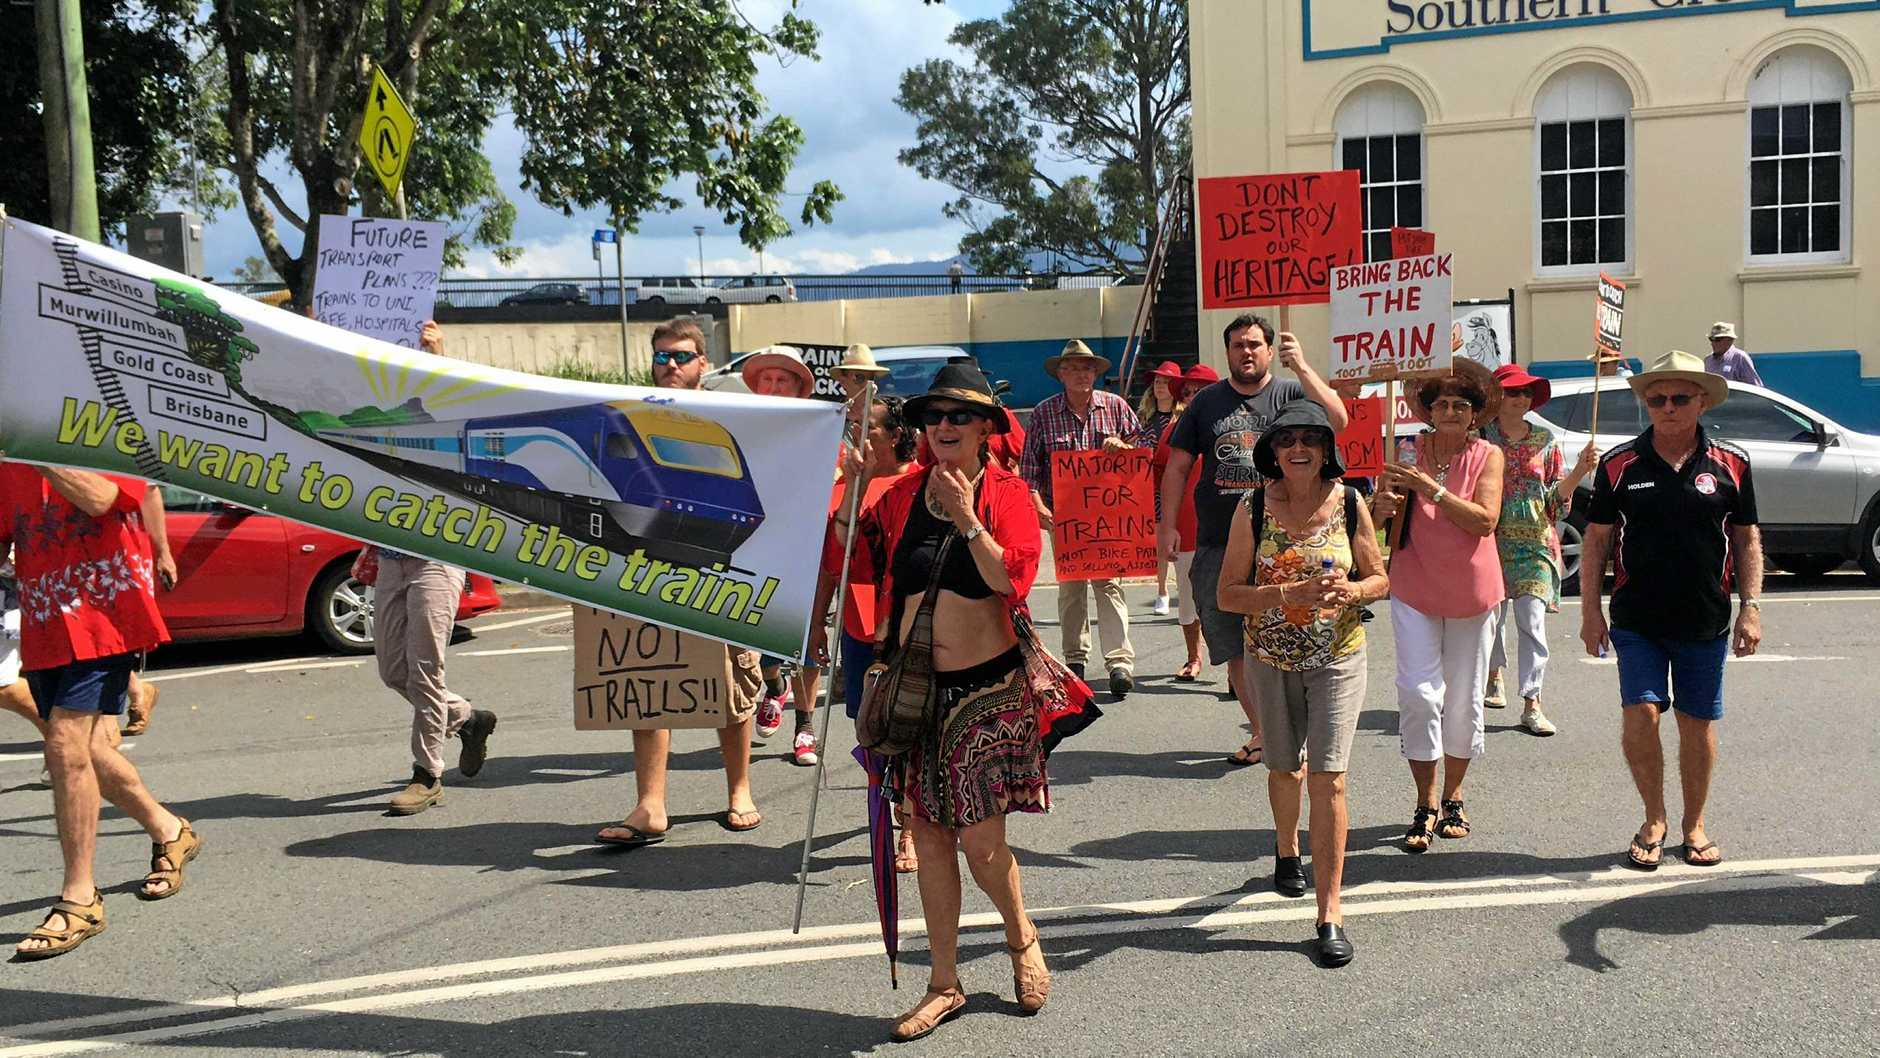 Protesters are calling for the railway to return to Murwillumbah.